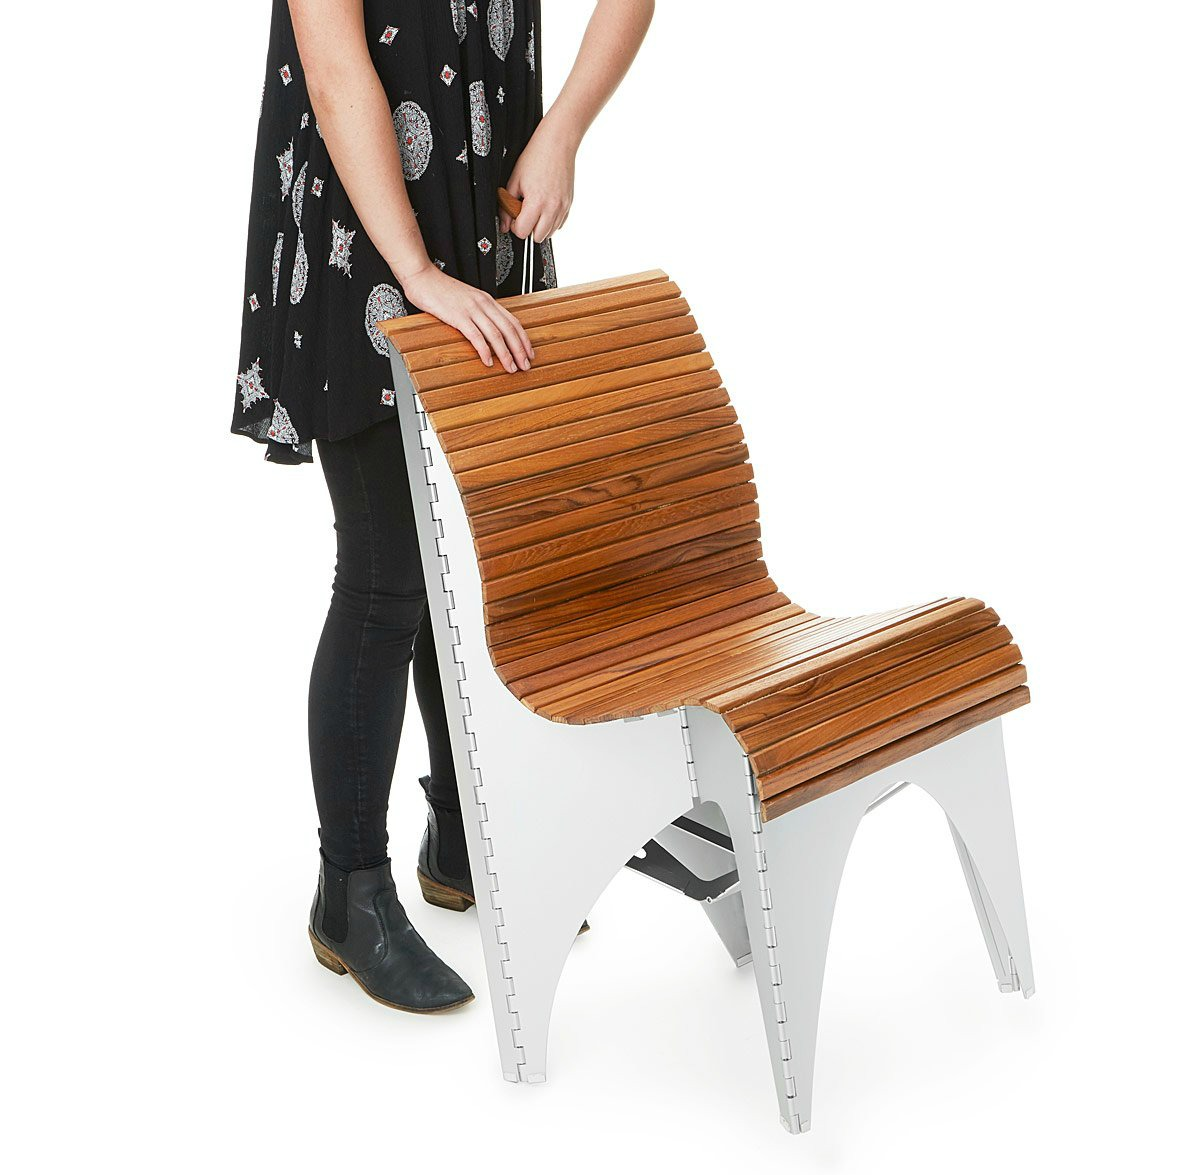 Shape-Shifting Ollie Chair | UncommonGoods